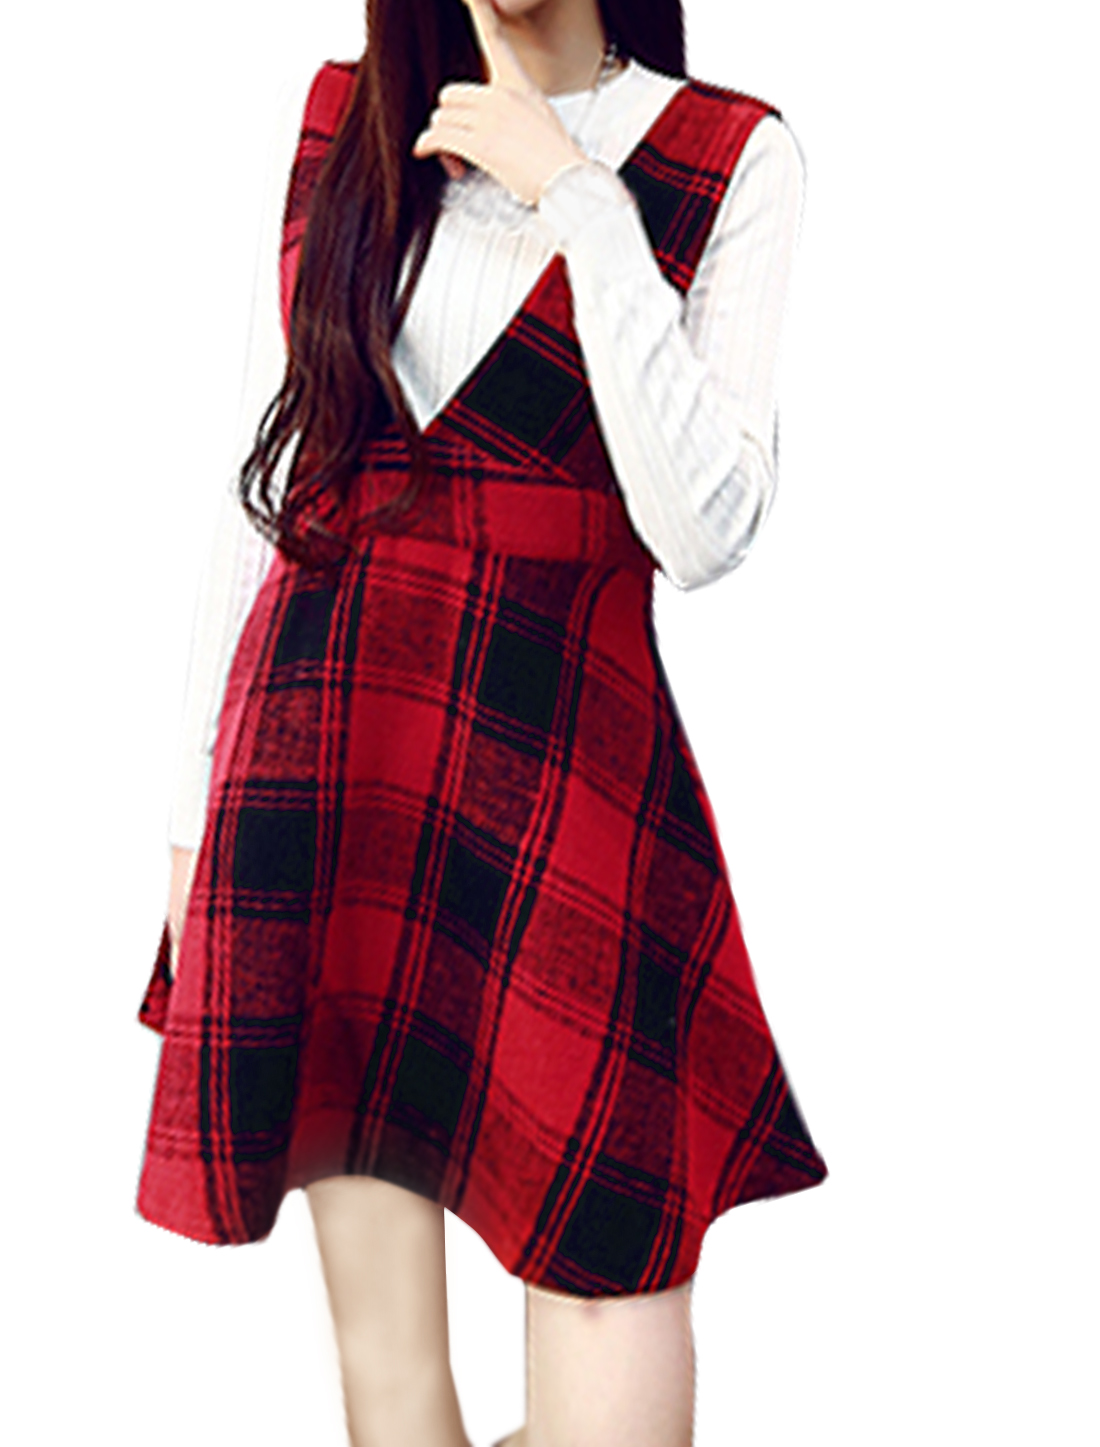 Ladies Sleeveless Plaids Prints Casual Worsted Suspender Skirt Red S